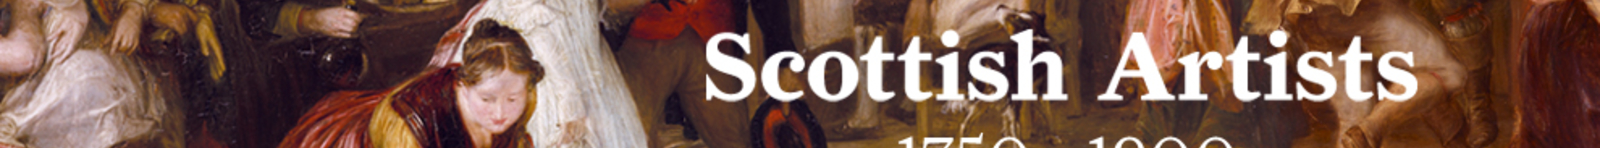 Scottish Artists 1750-1900 at The Queen's Gallery, Palace of Holyroodhouse